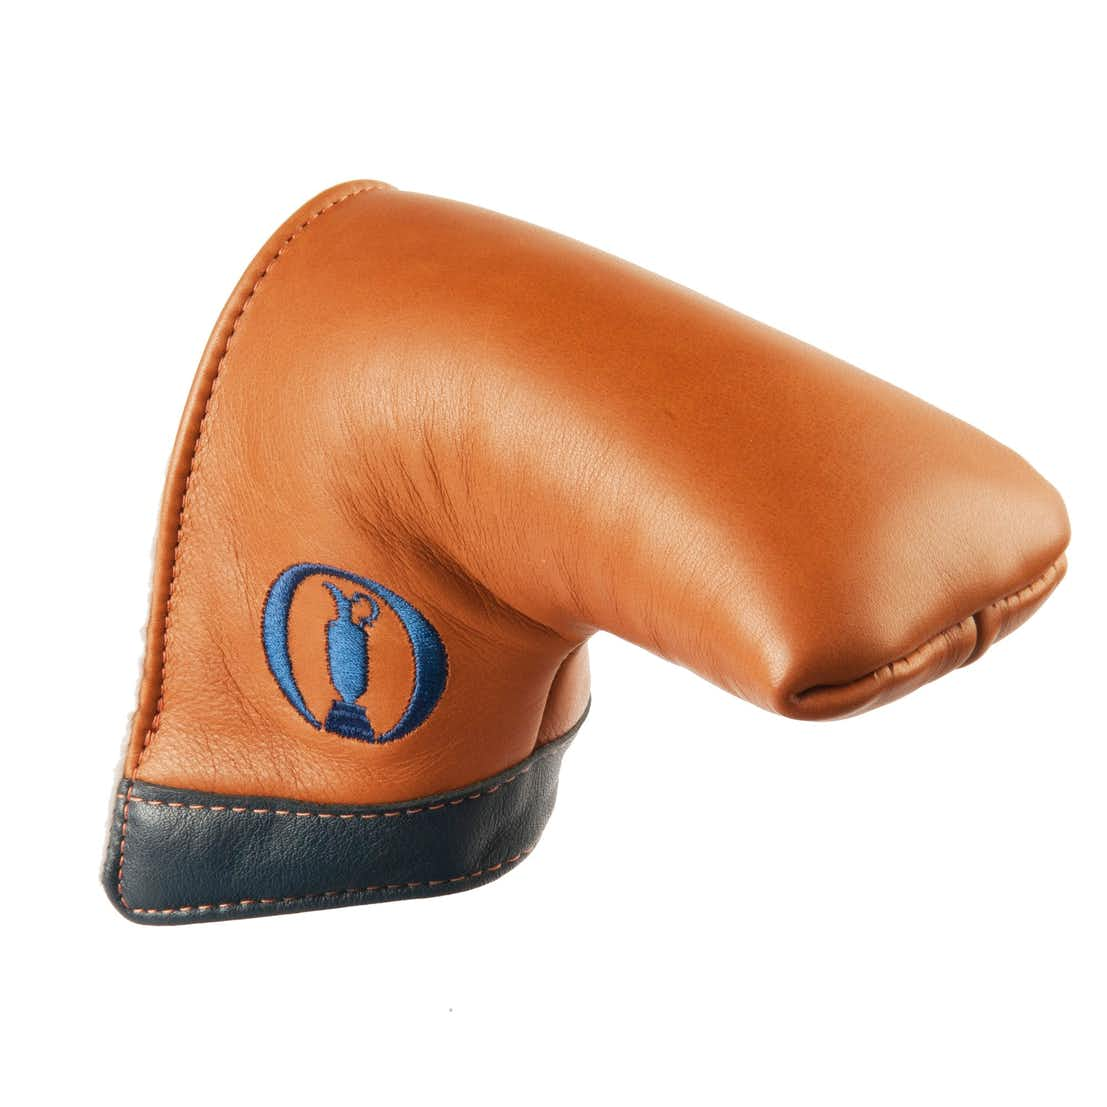 The Open Blade Putter Headcover - Brown